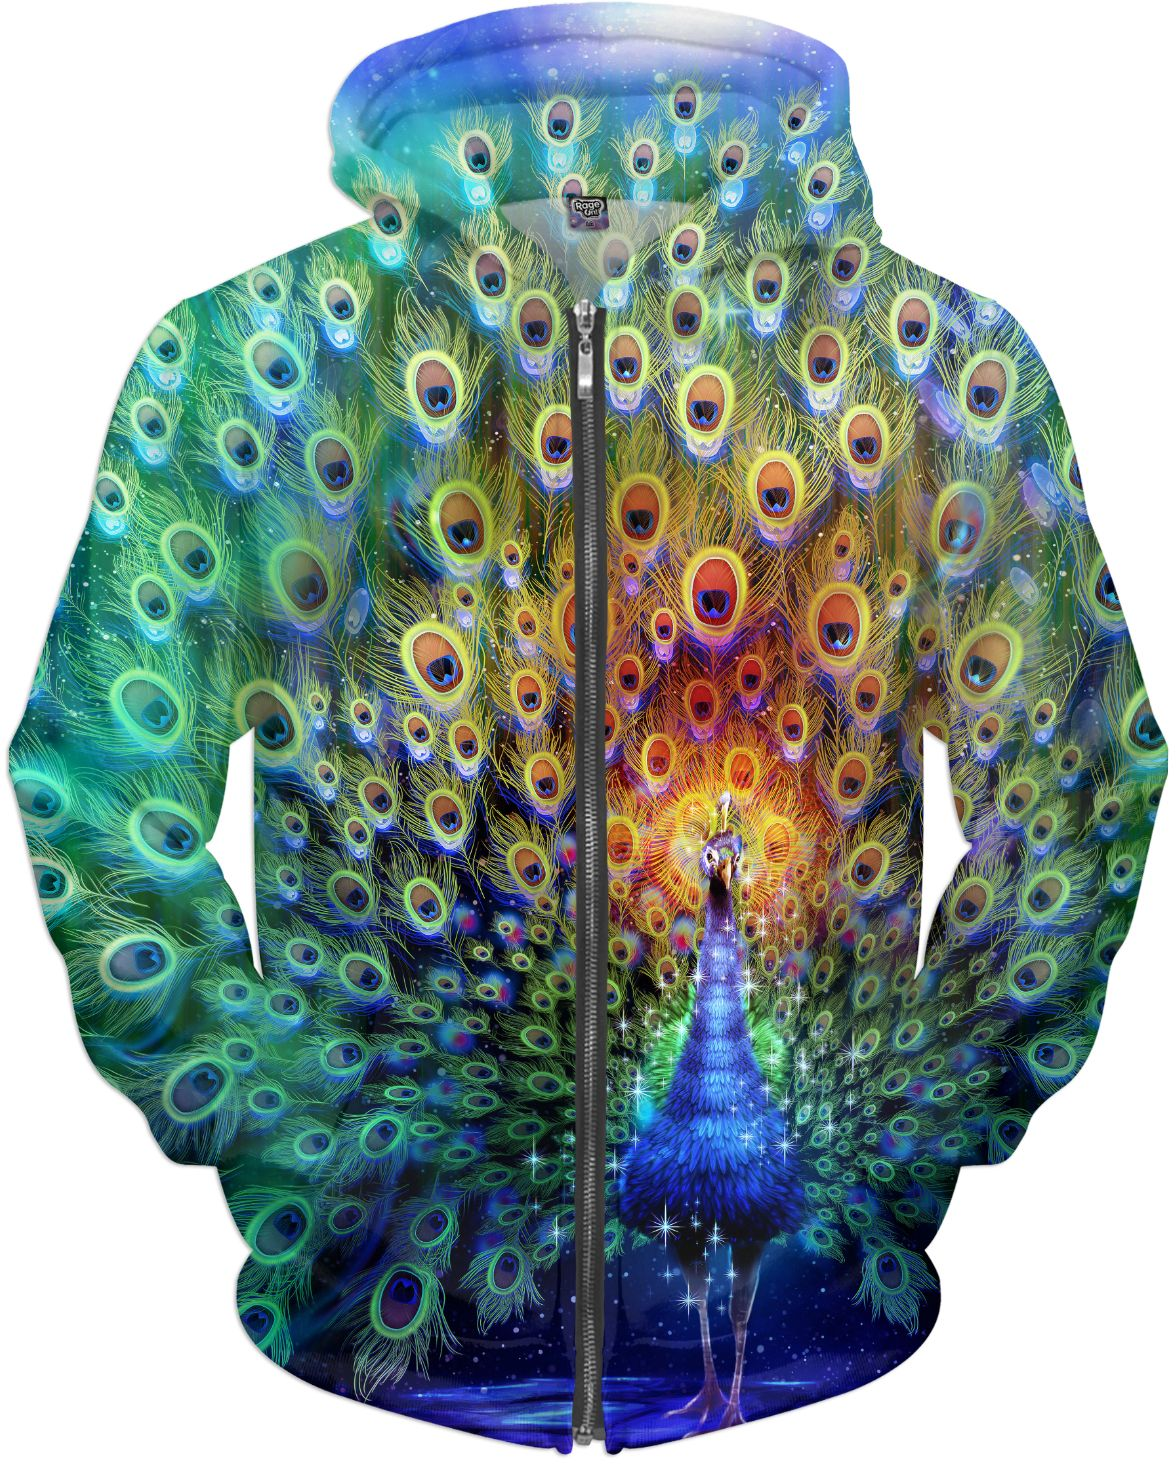 Trip Out With This Psychedelic Hoodiesforwomen K Hoodie From Louis Dyer Hoodiesoutfit Sweatshirtshoodies Peacocks Peaco Psychedelic Peacock Hoodie Print [ 1465 x 1176 Pixel ]